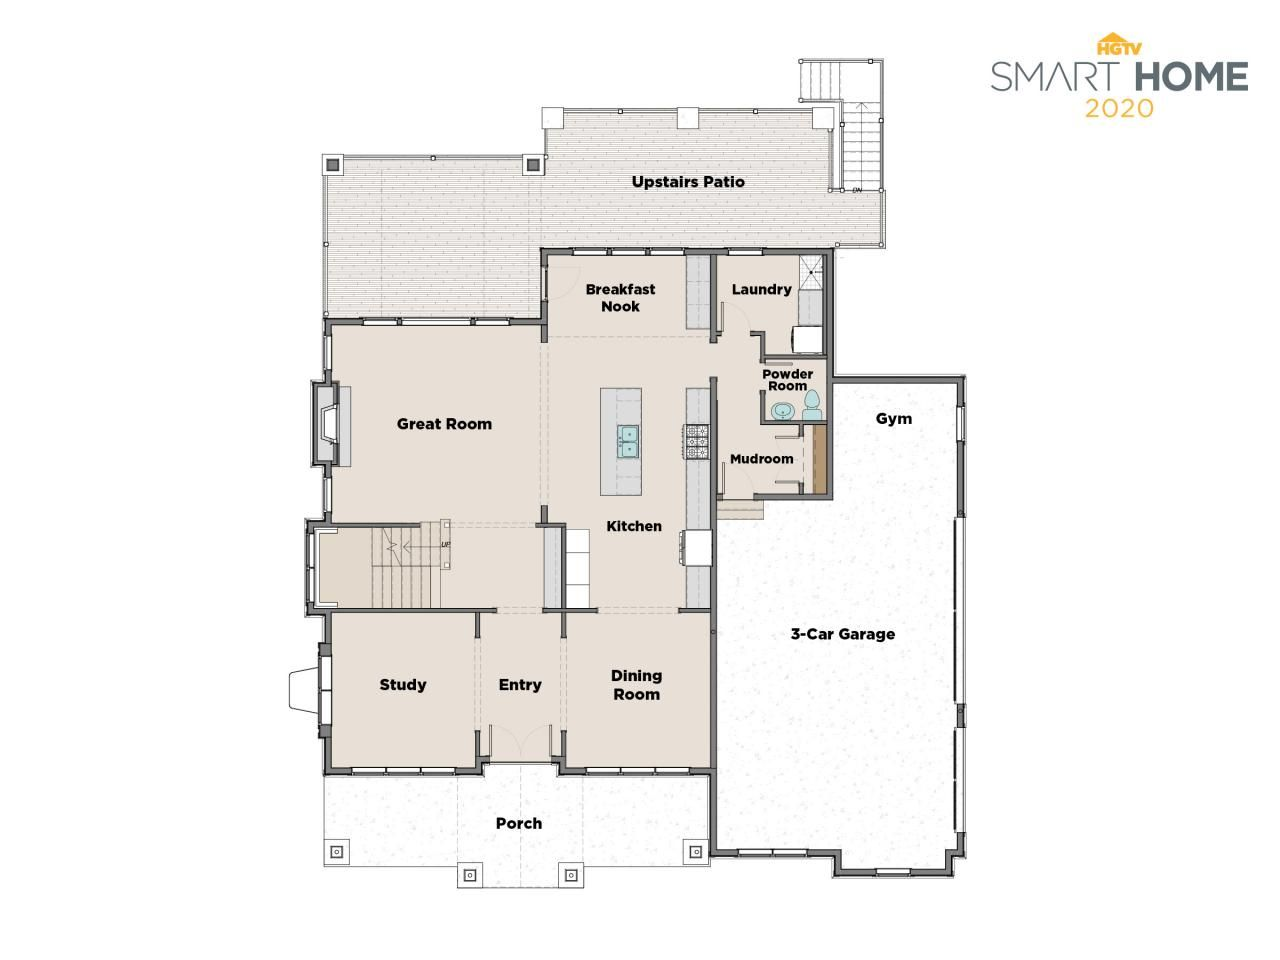 Discover The Floor Plan For Hgtv Smart Home 2020 Hgtv Dream Homes Floor Plans House Floor Plans